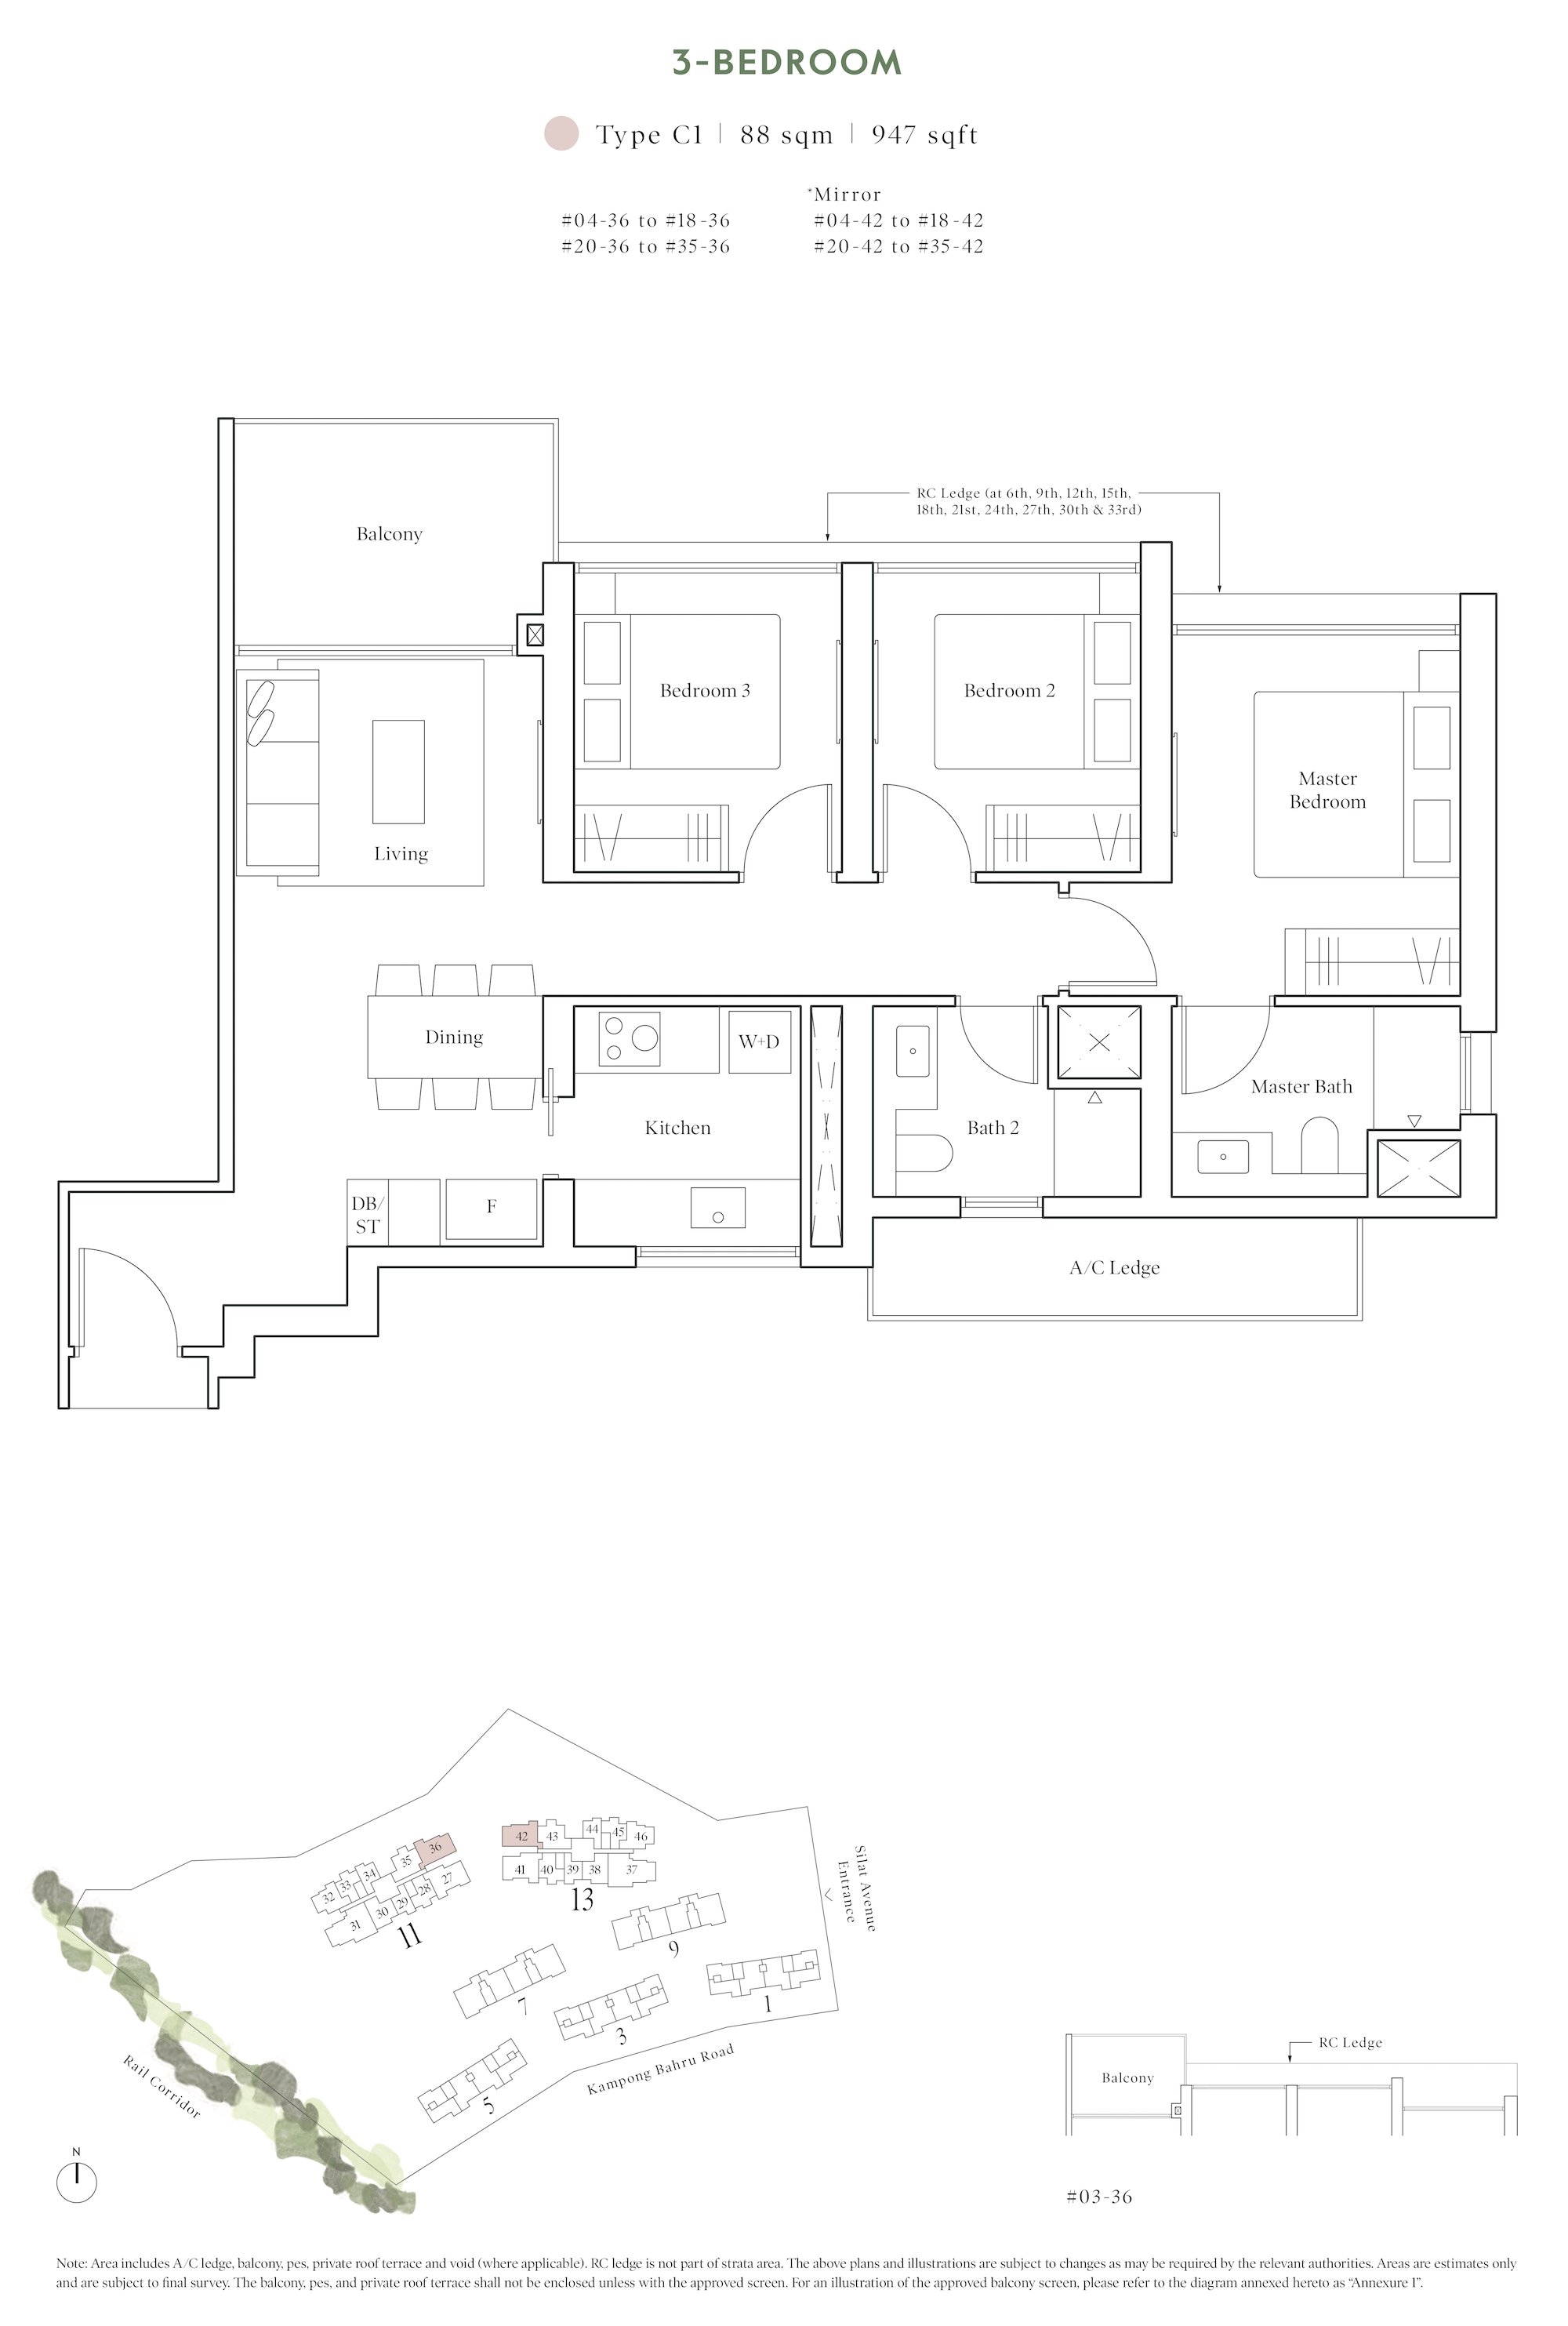 Avenue South Residence 南峰雅苑 horizon floor plan 3-bedroom c1